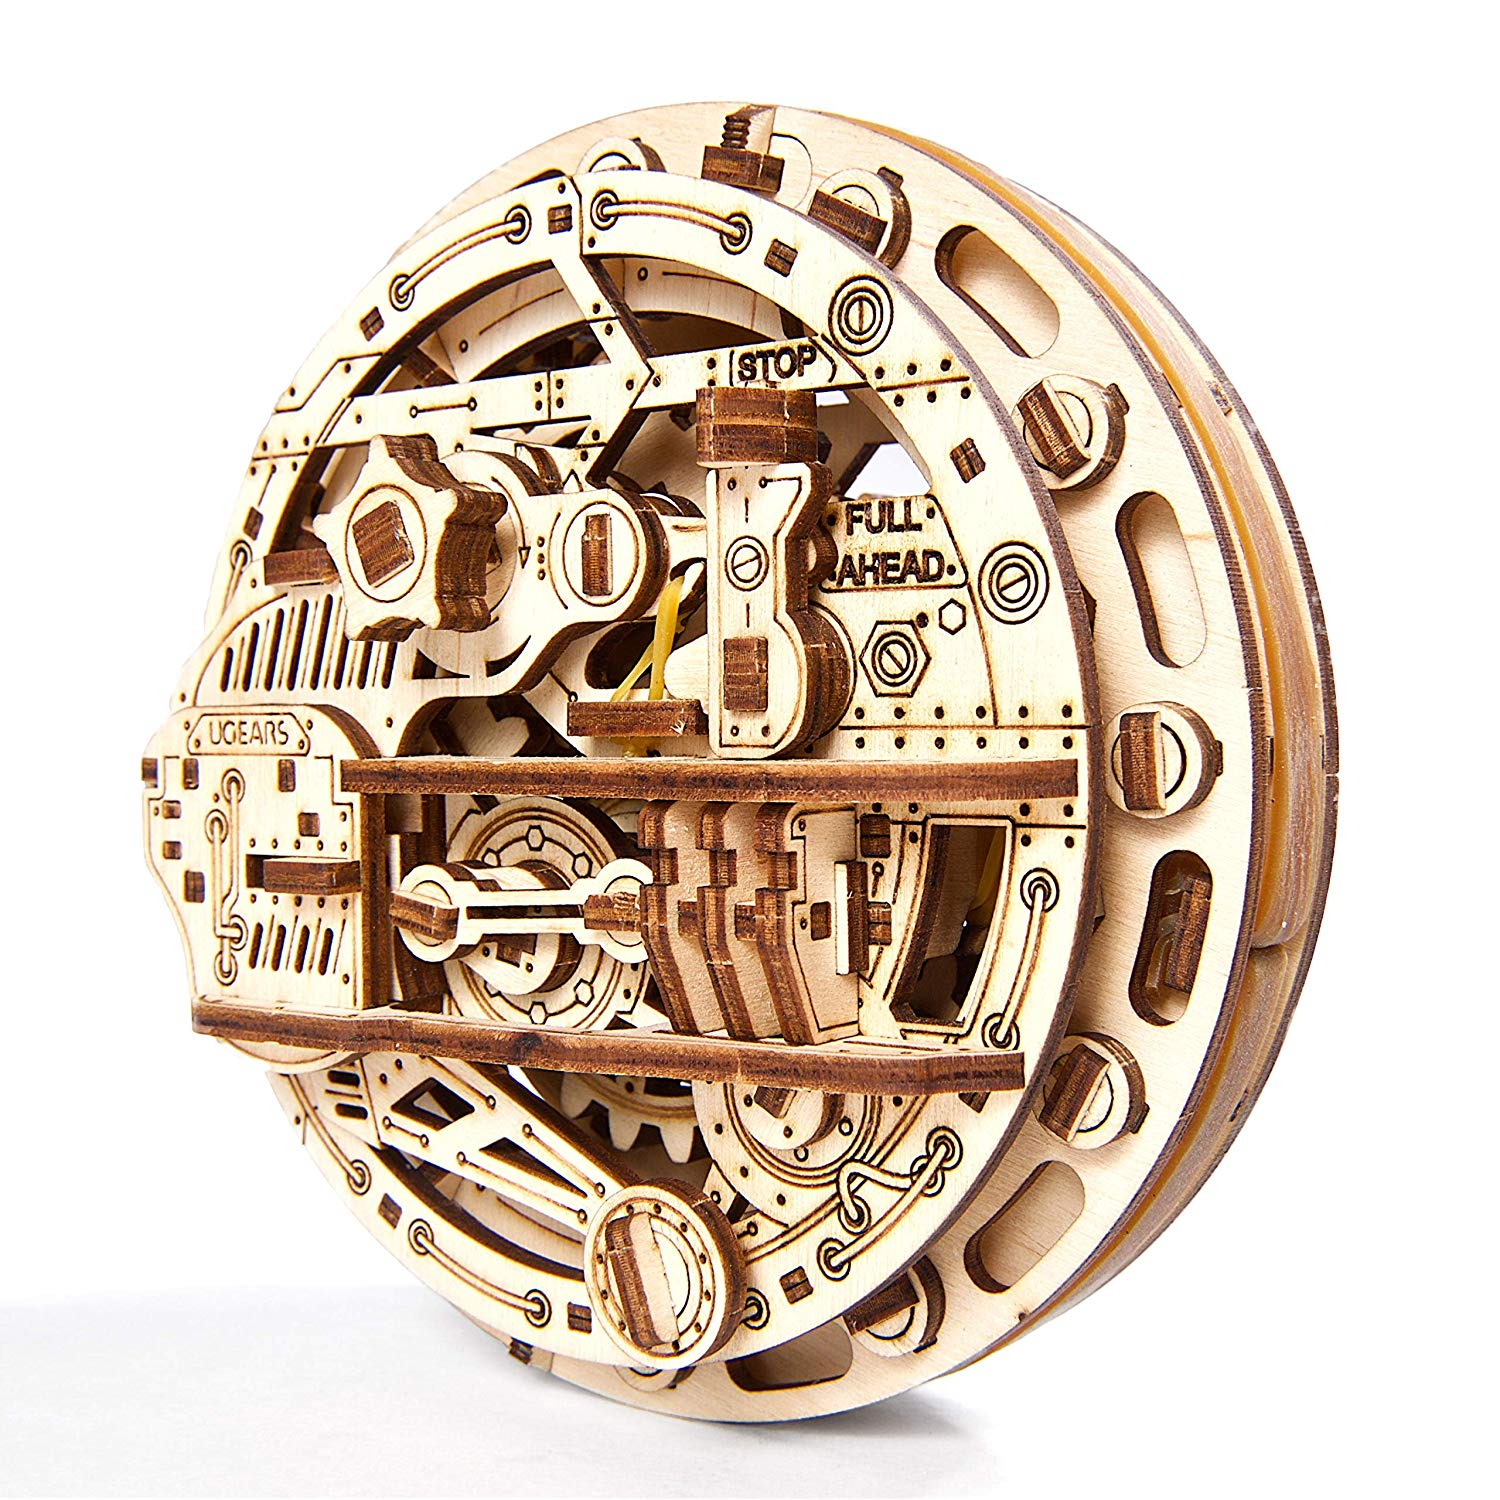 Ugears Monowheel 3D Mechanical Wooden Model Kit